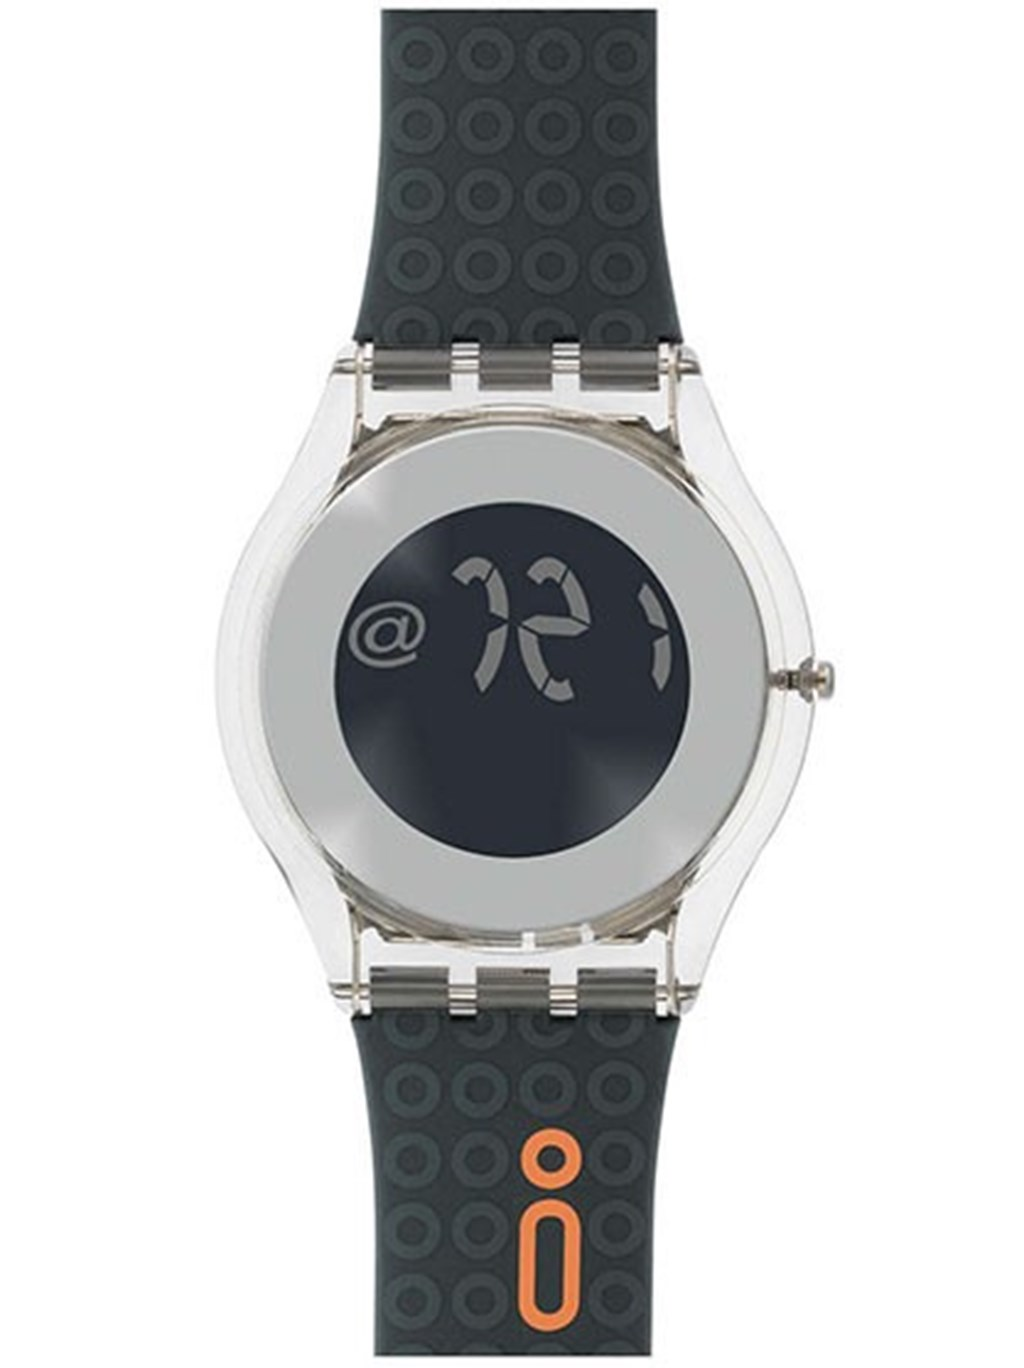 Swatch No Apple Iwatch Trademark 1